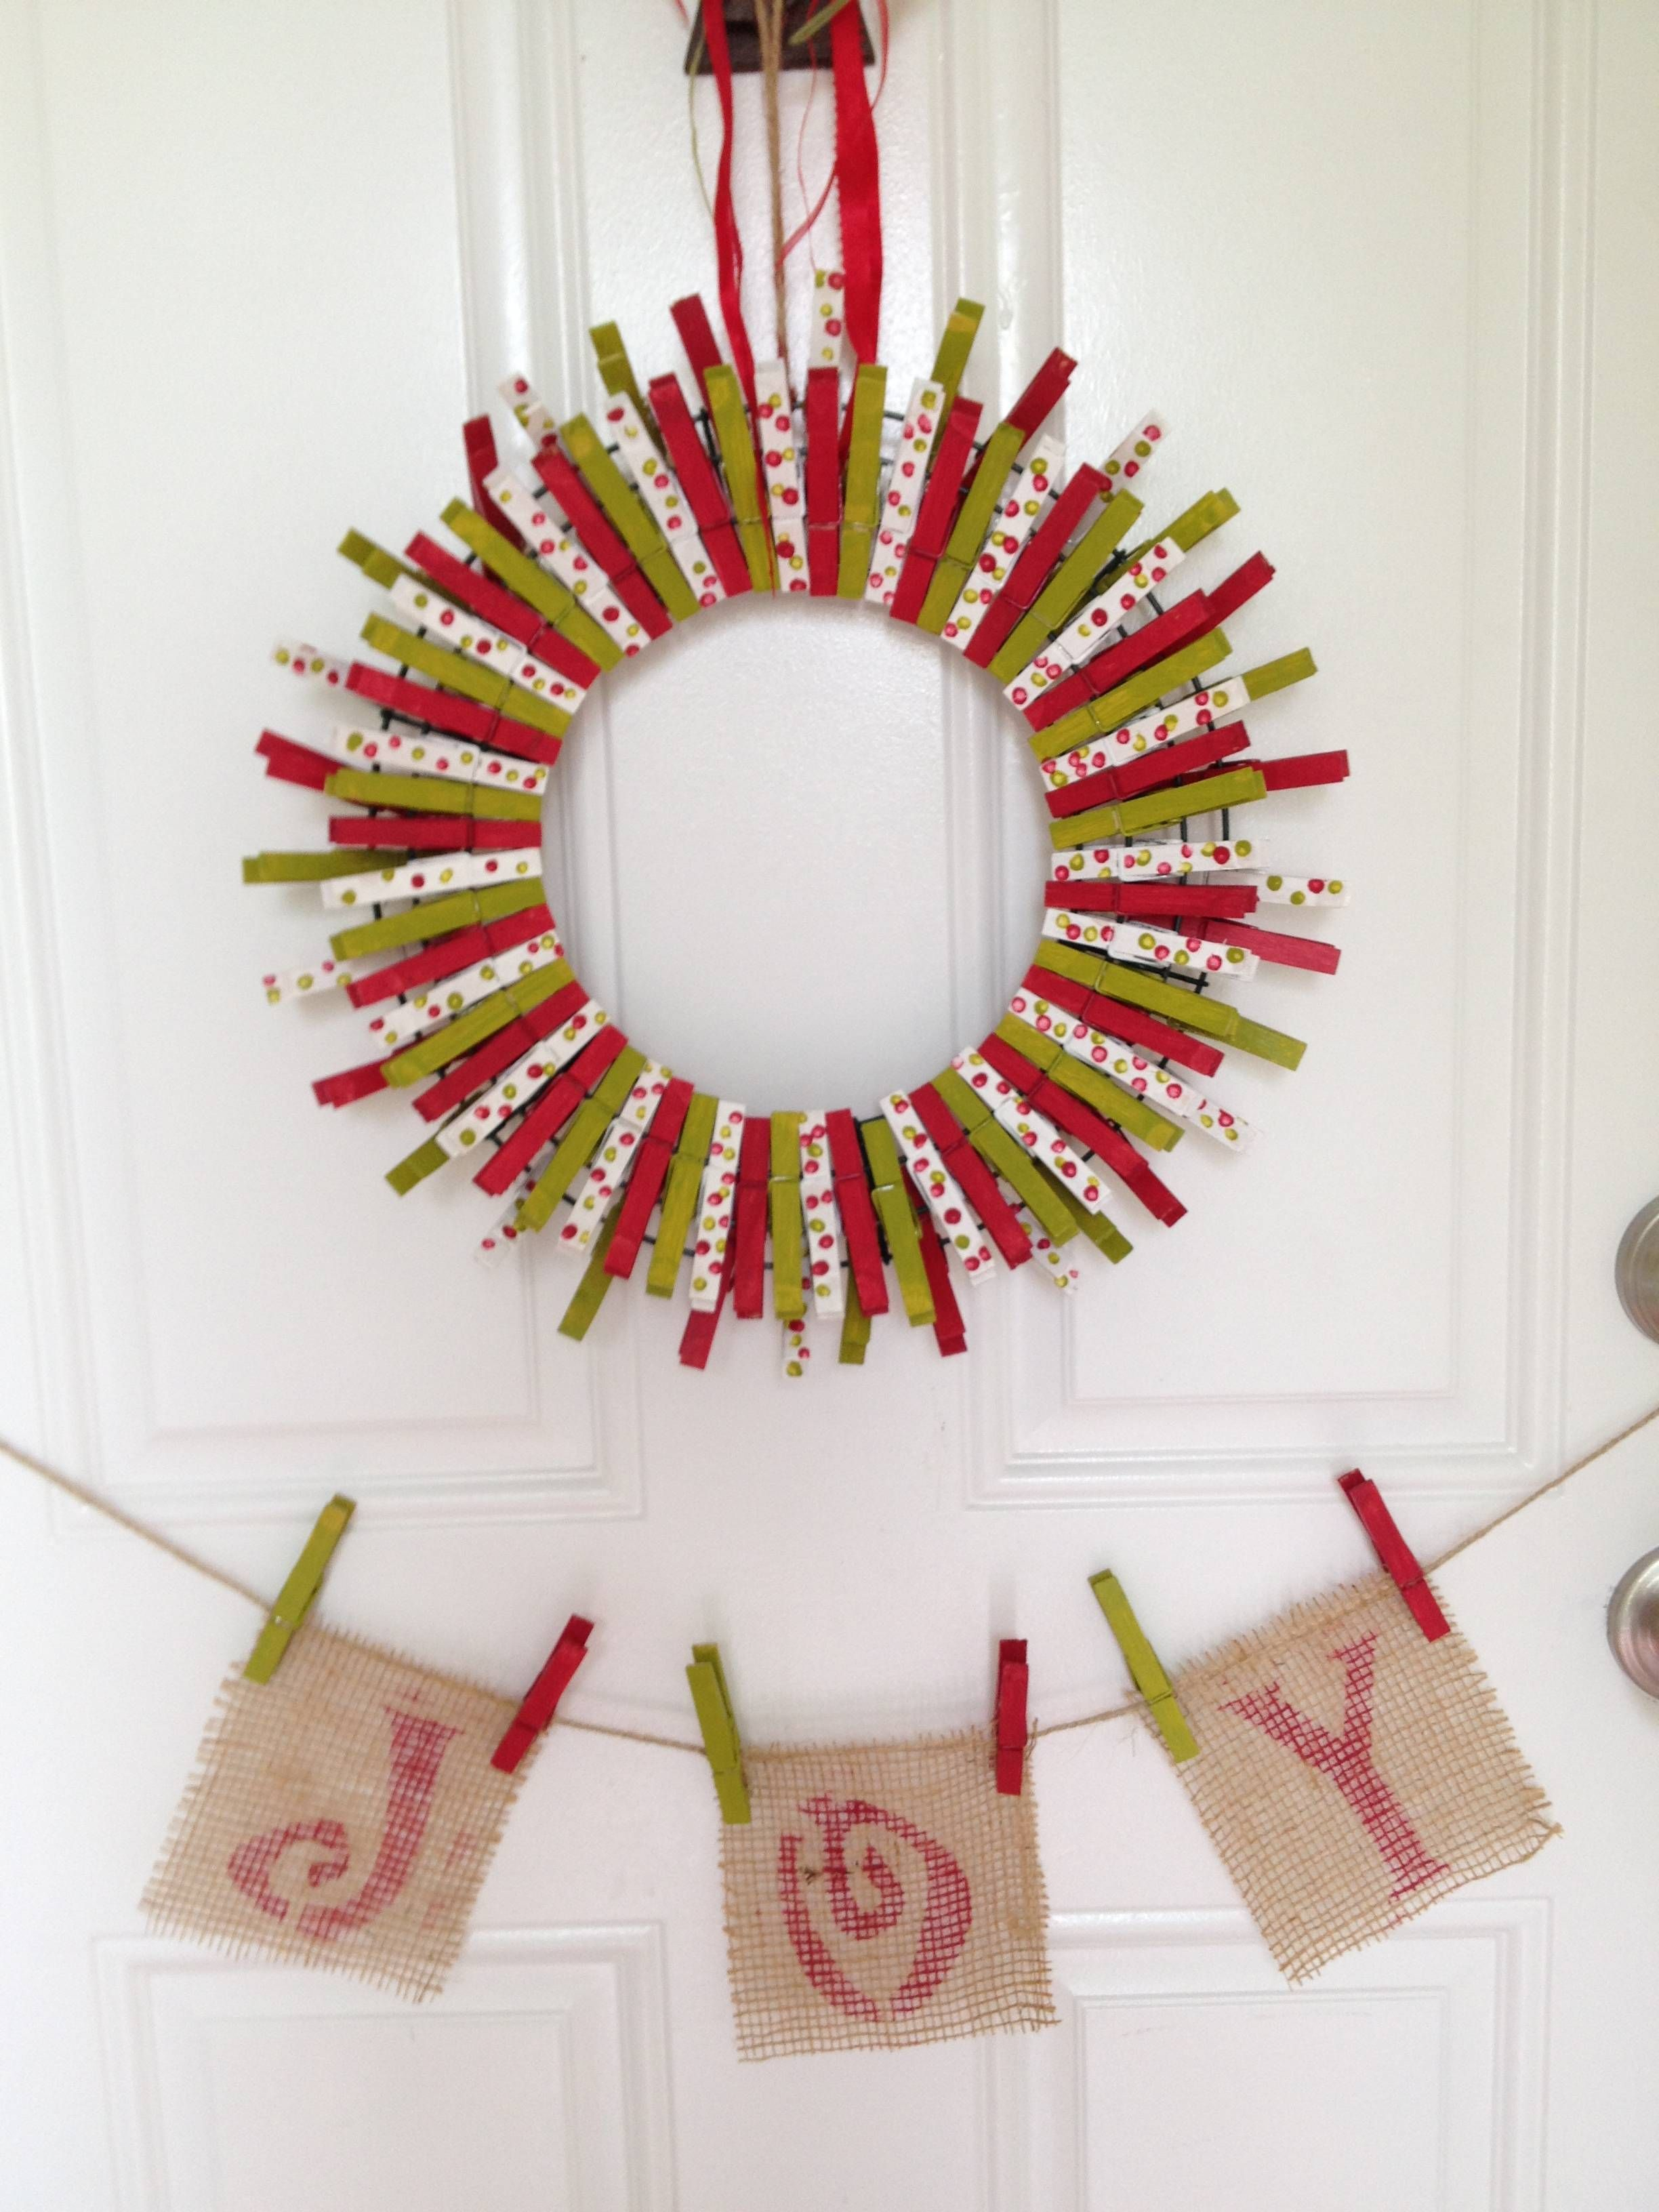 Holiday Clothes Pin Wreath: Festive and Fun Project | The Home Depot ...